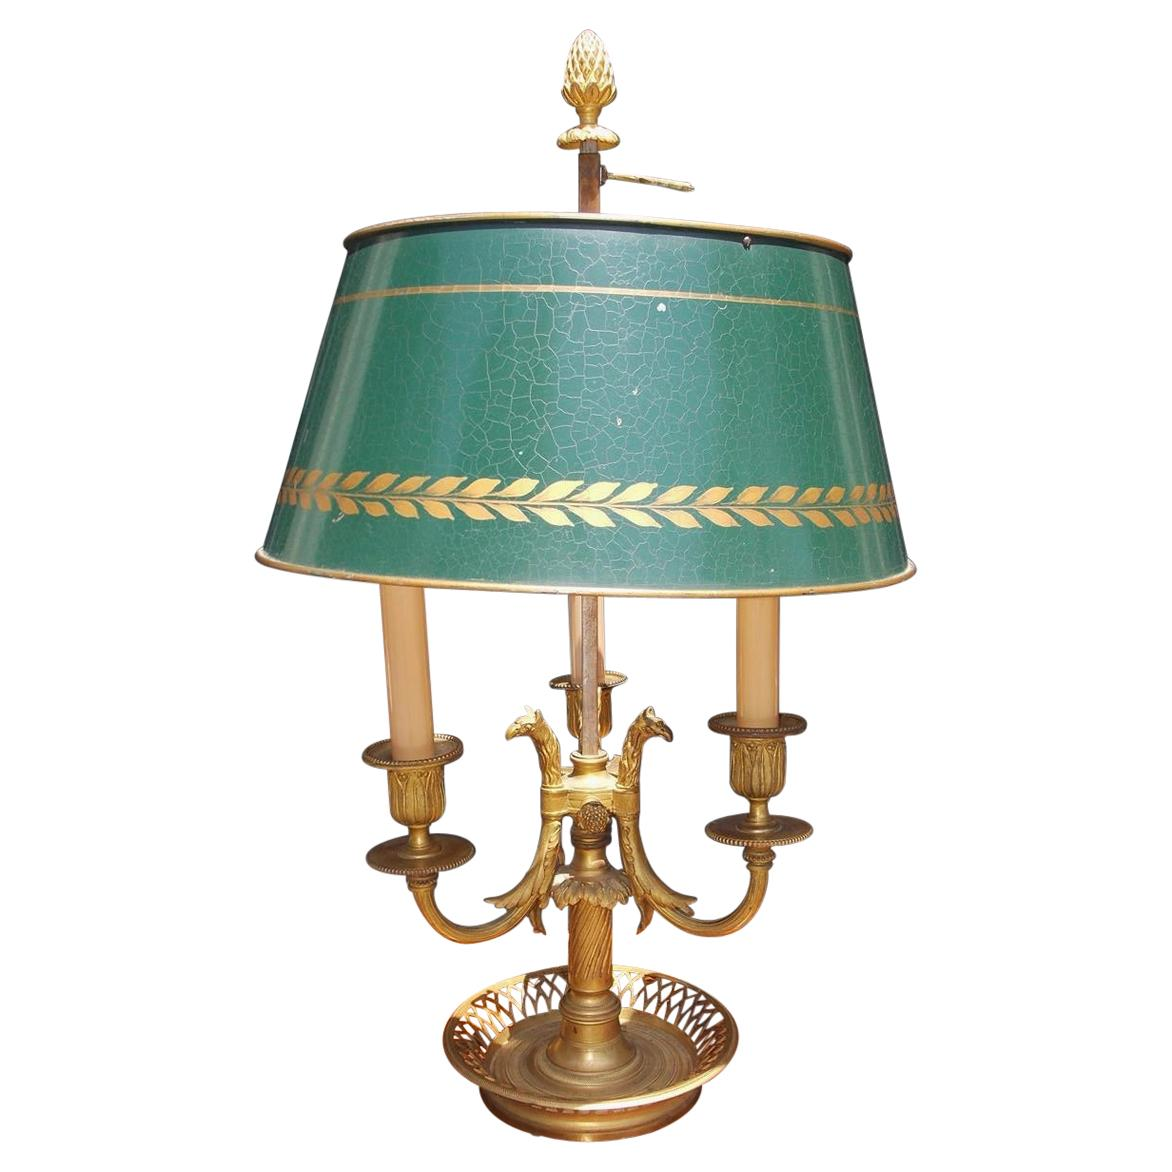 French Empire Gilt Bronze and Griffon Bouillotte Lamp with Tole Shade, C. 1820